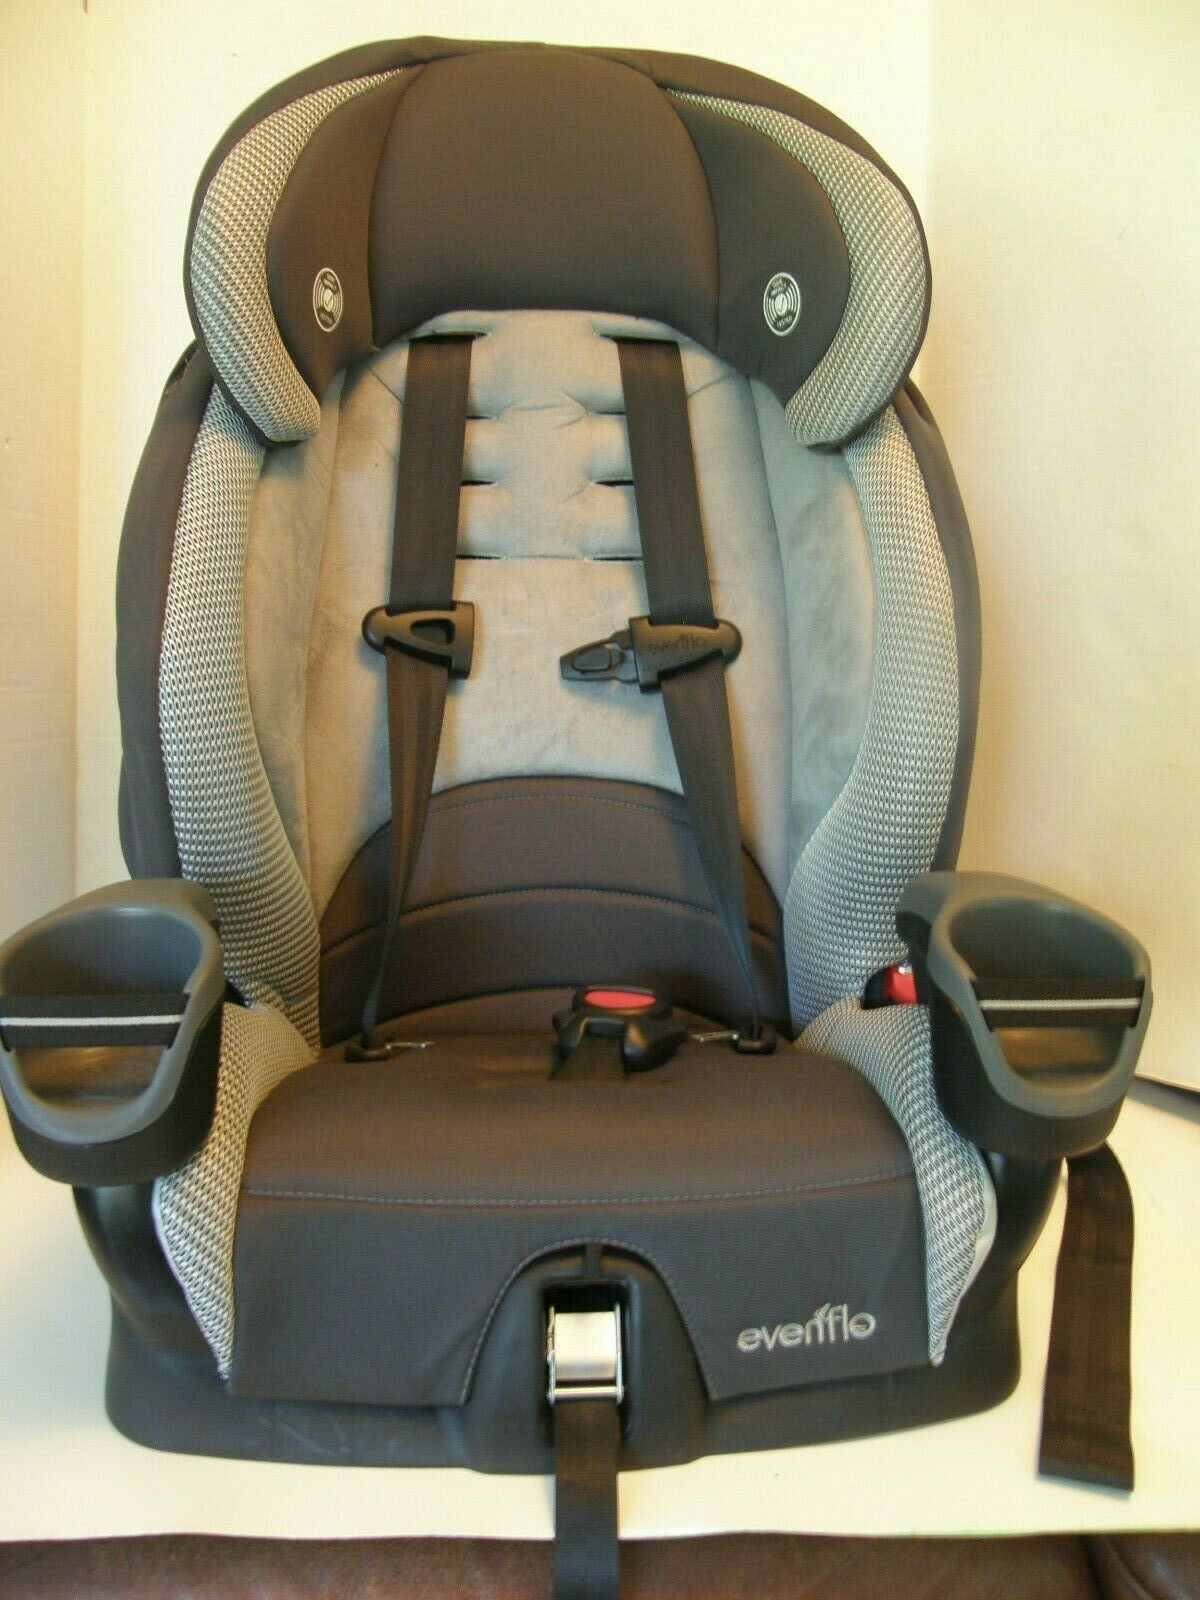 EVENFLO MASTRO BABY CAR SEAT  COVER MODEL 31011639 SIDE IMPACT TESTED - $74.24